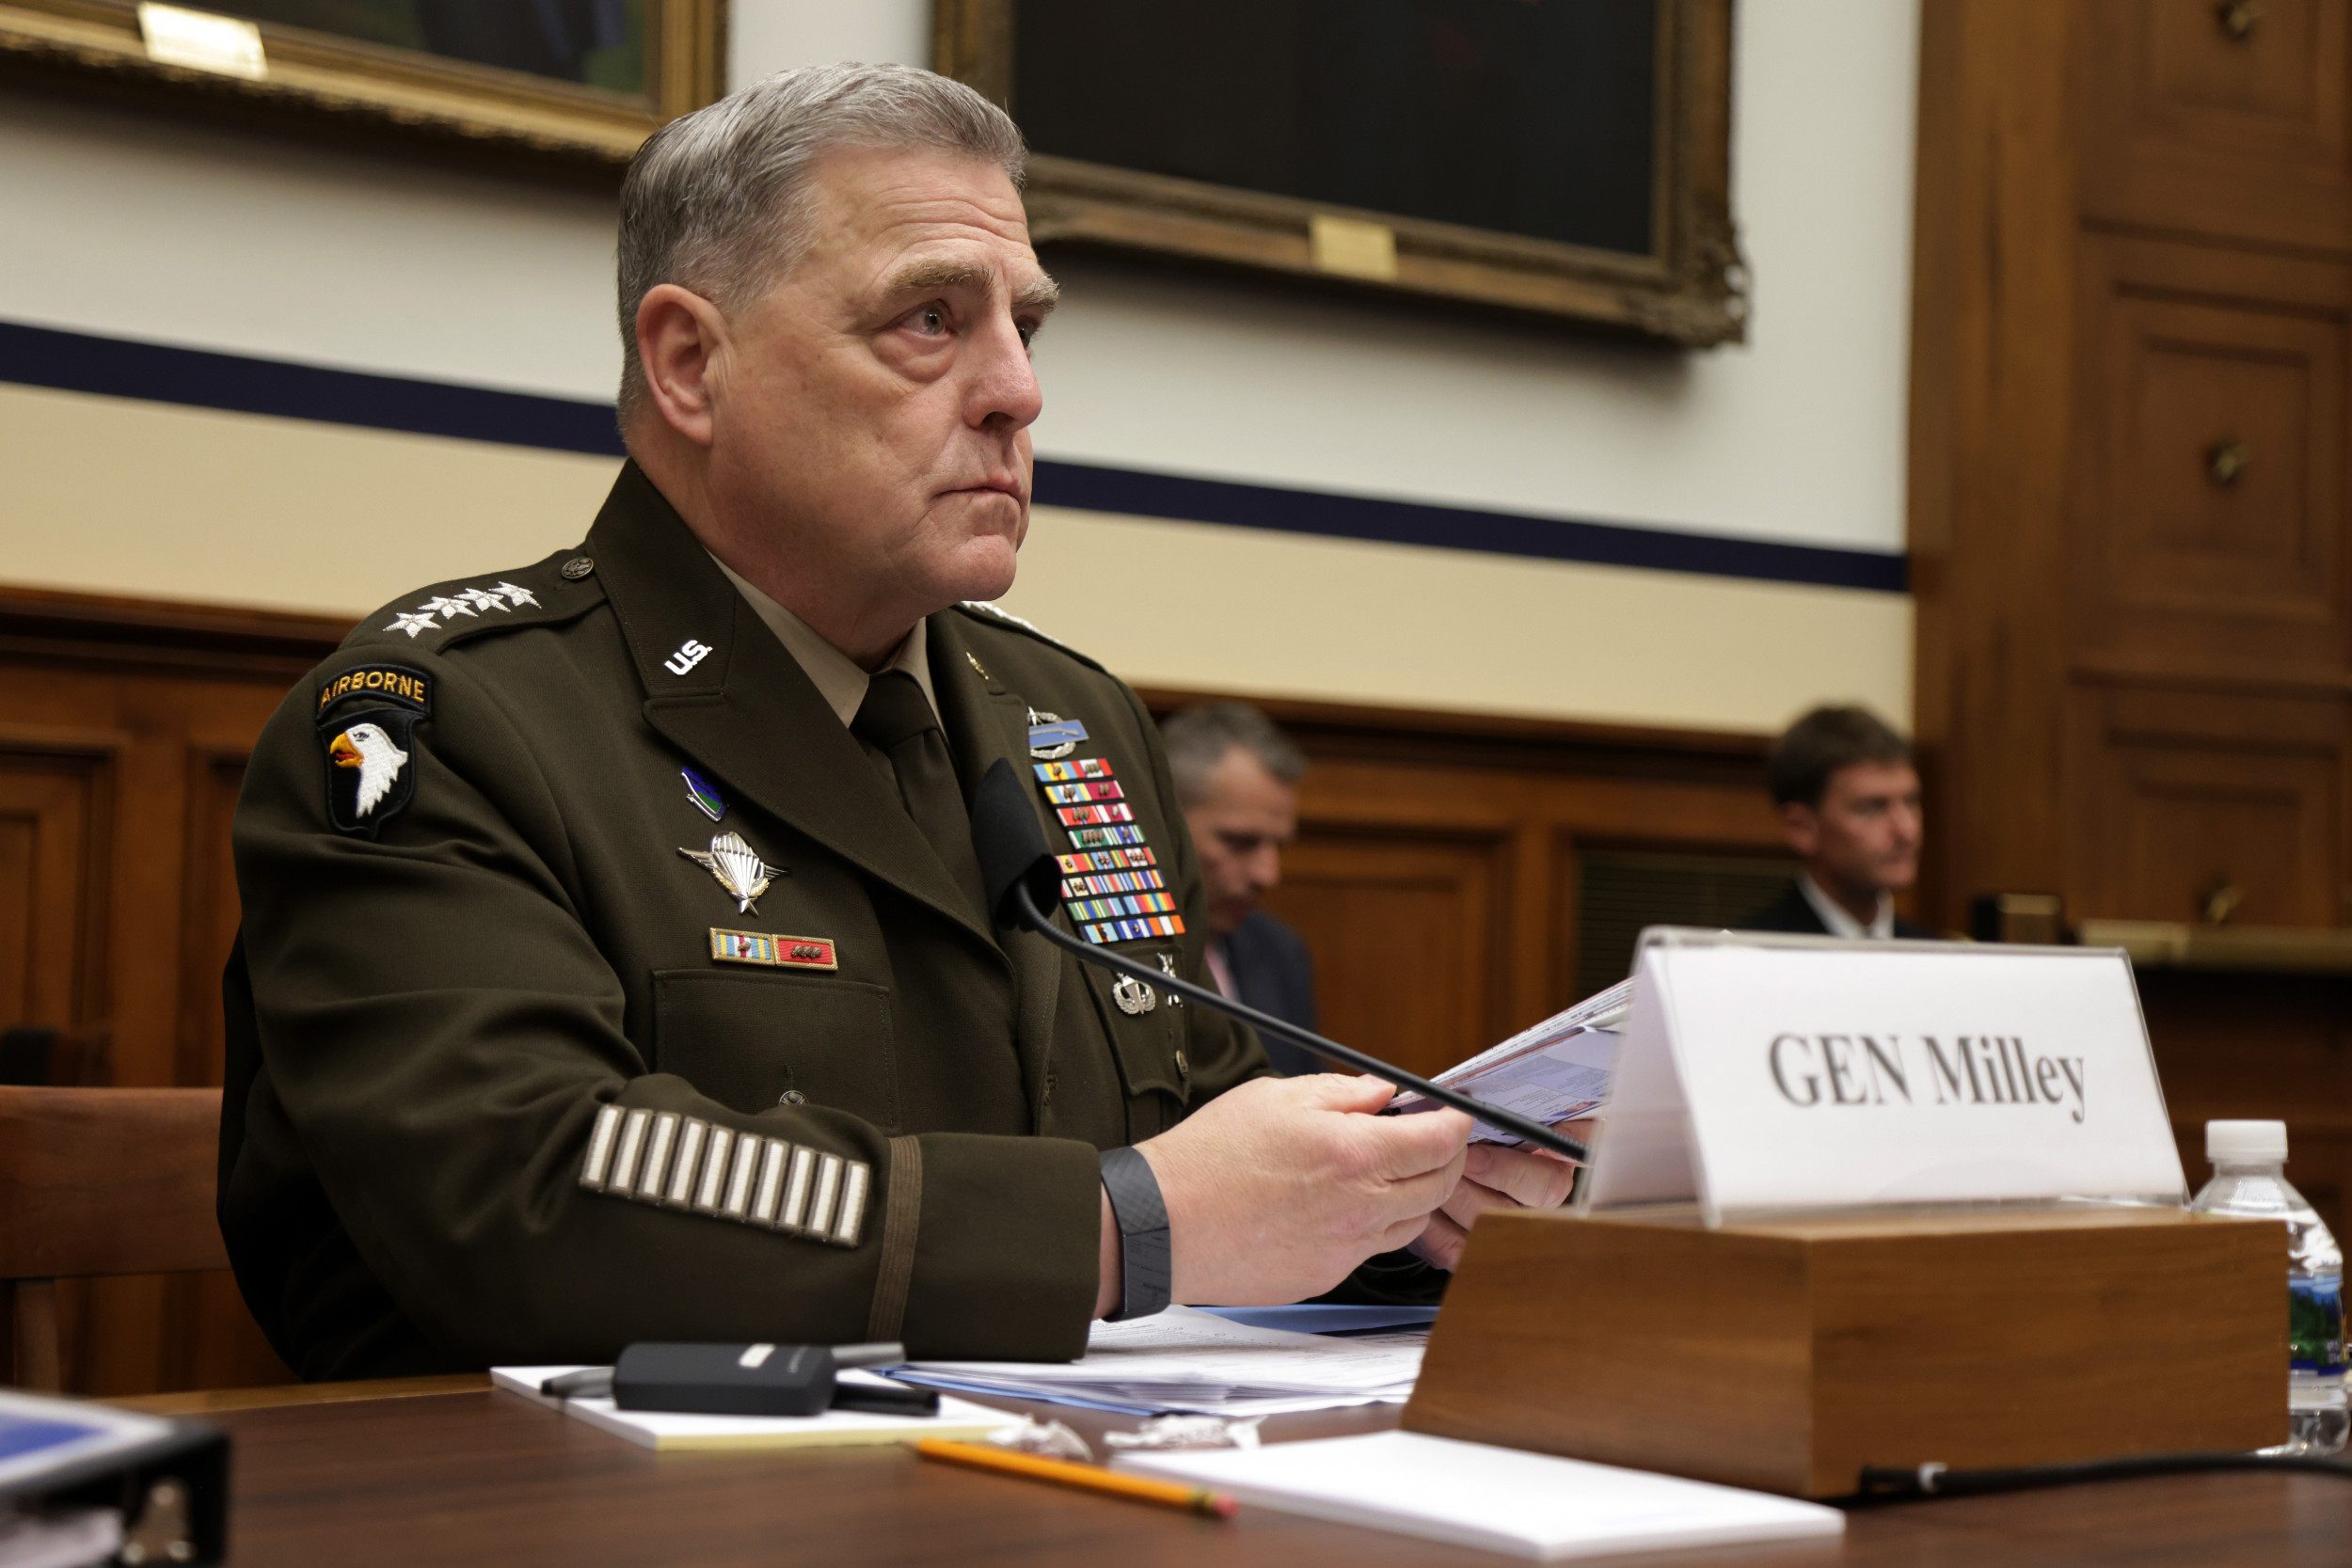 gen-milley-addressed-critical-race-theor